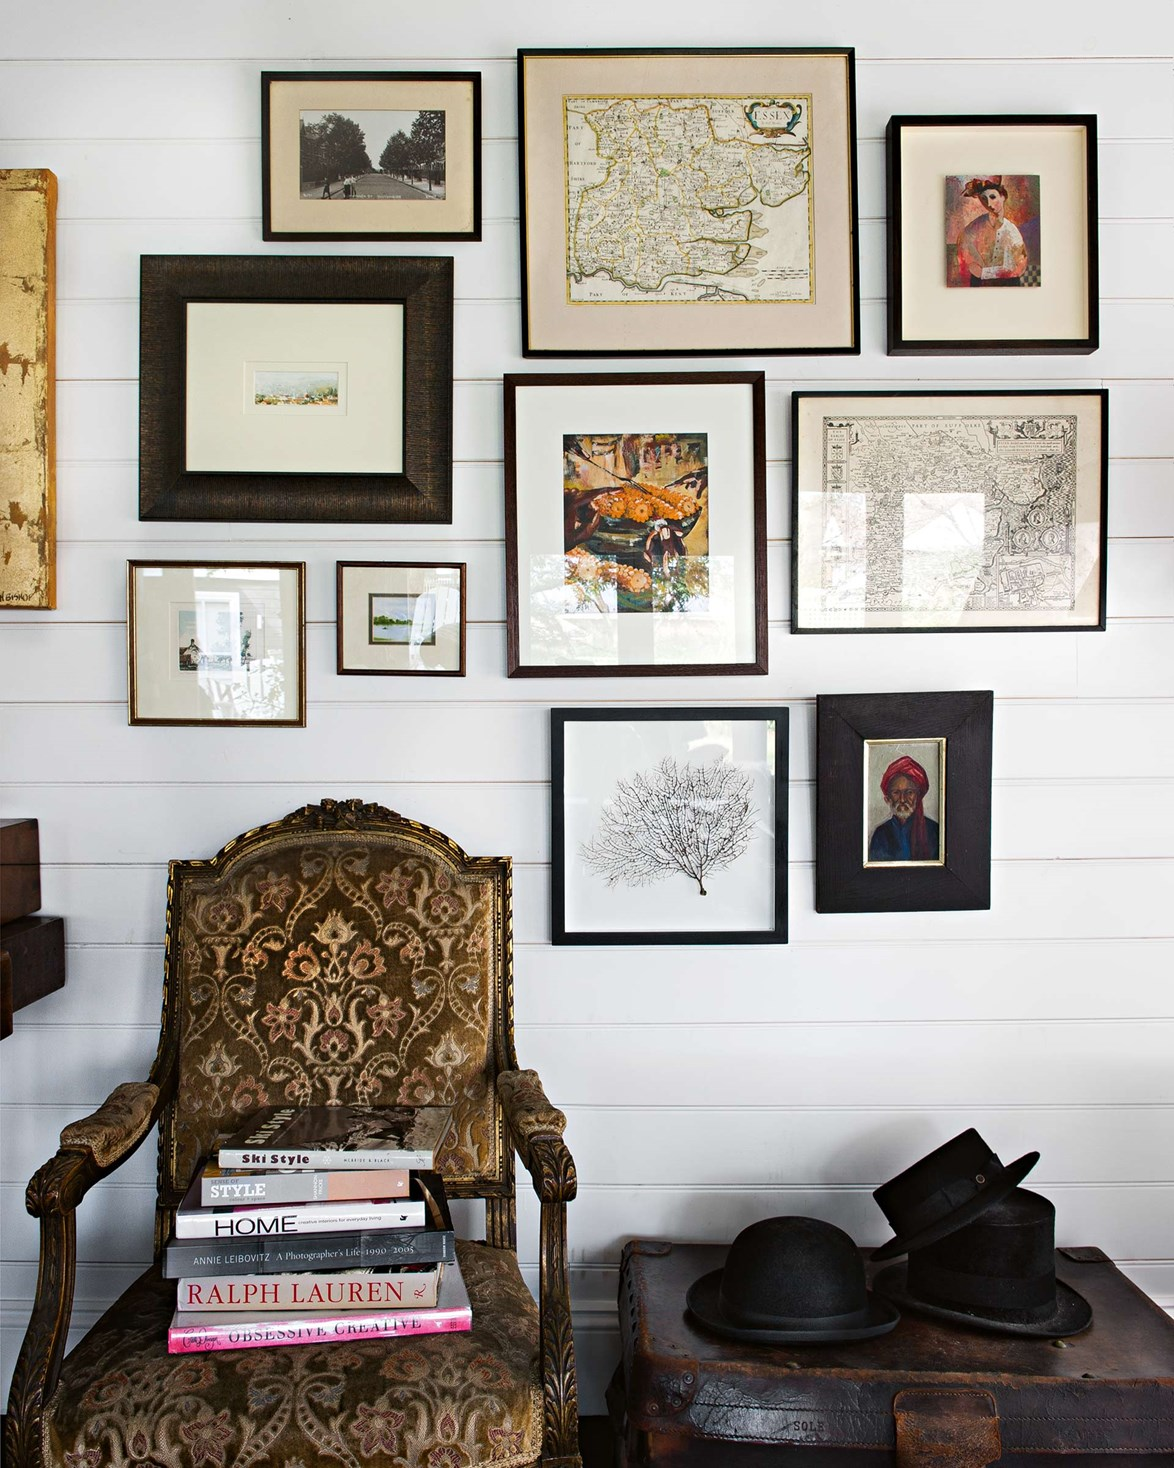 "**Accessorise with vintage accents**<P> <P>Artwork, hats, candlesticks and other eclectic pieces can add a French touch to a modern home. Group them close together for an eye-catching vignette. A white backdrop prevents this [weatherboard cottage in Bowral](https://www.homestolove.com.au/weatherboard-cottage-in-bowral-13647|target=""_blank"") from looking cluttered.<p> <p>*Photo: Brigid Arnott*"